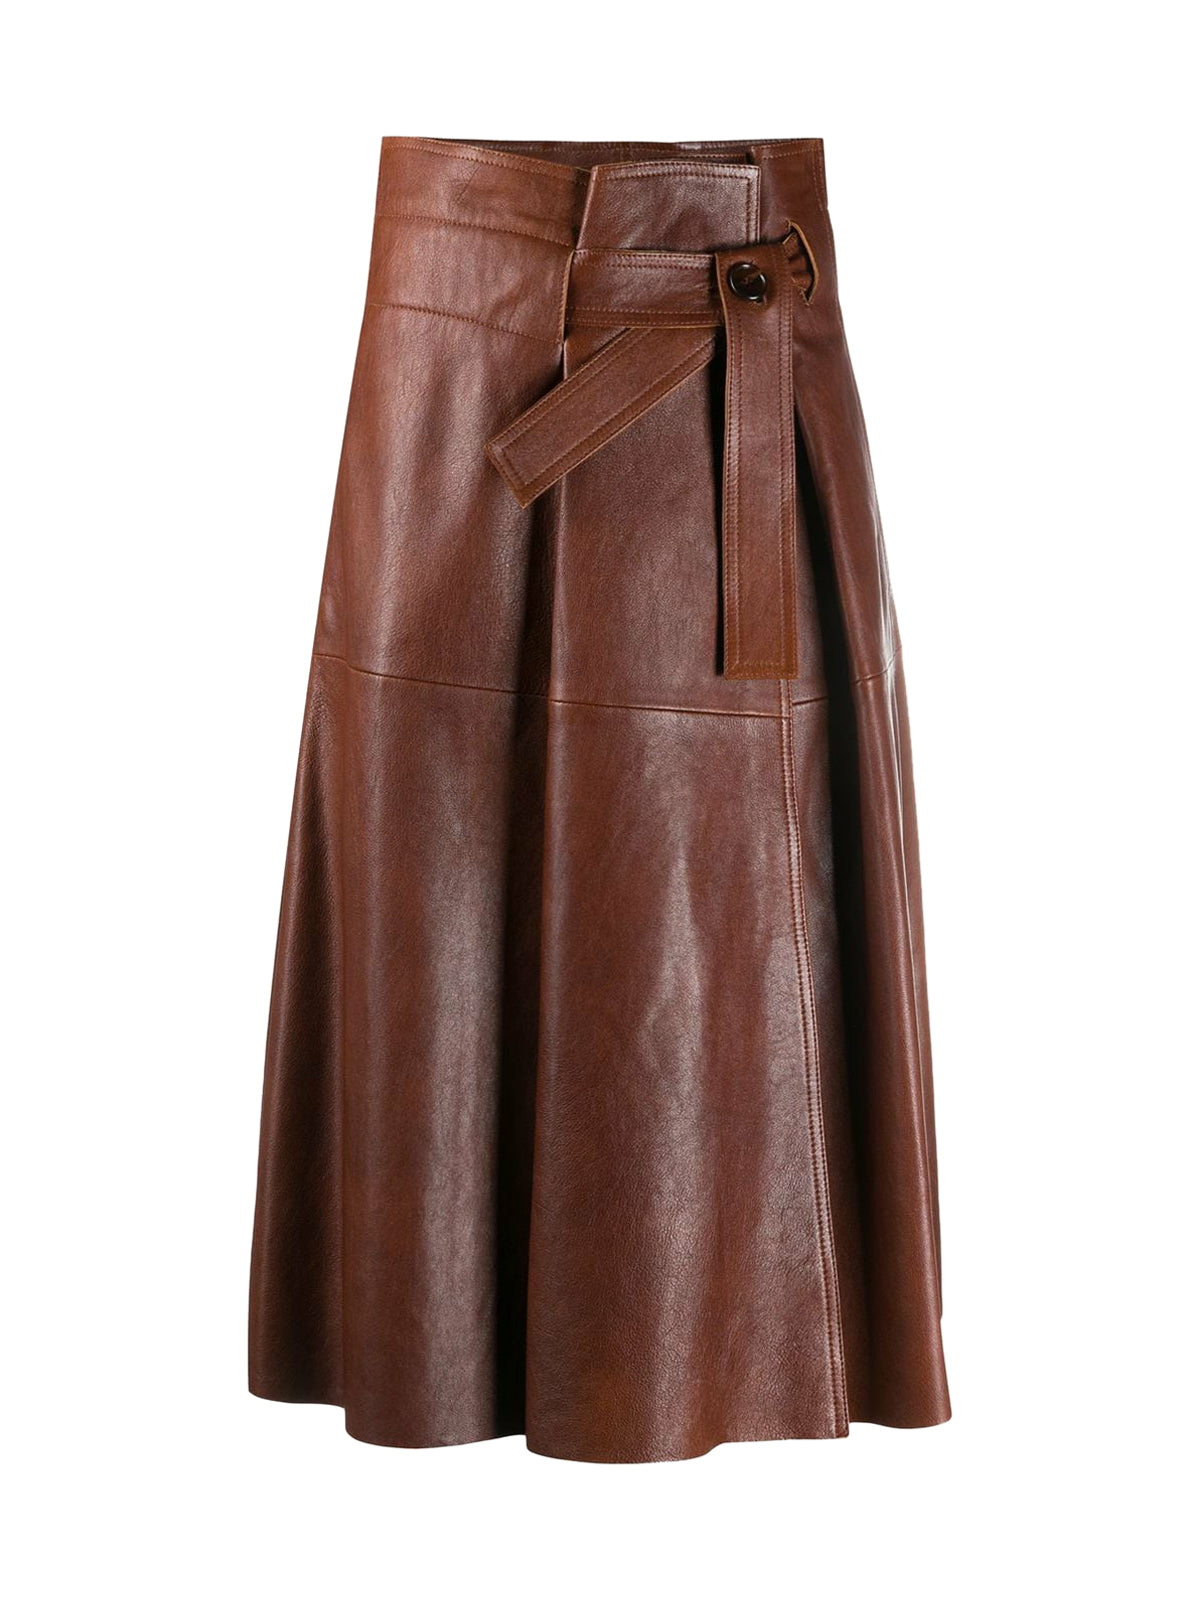 Flared skirt with belt